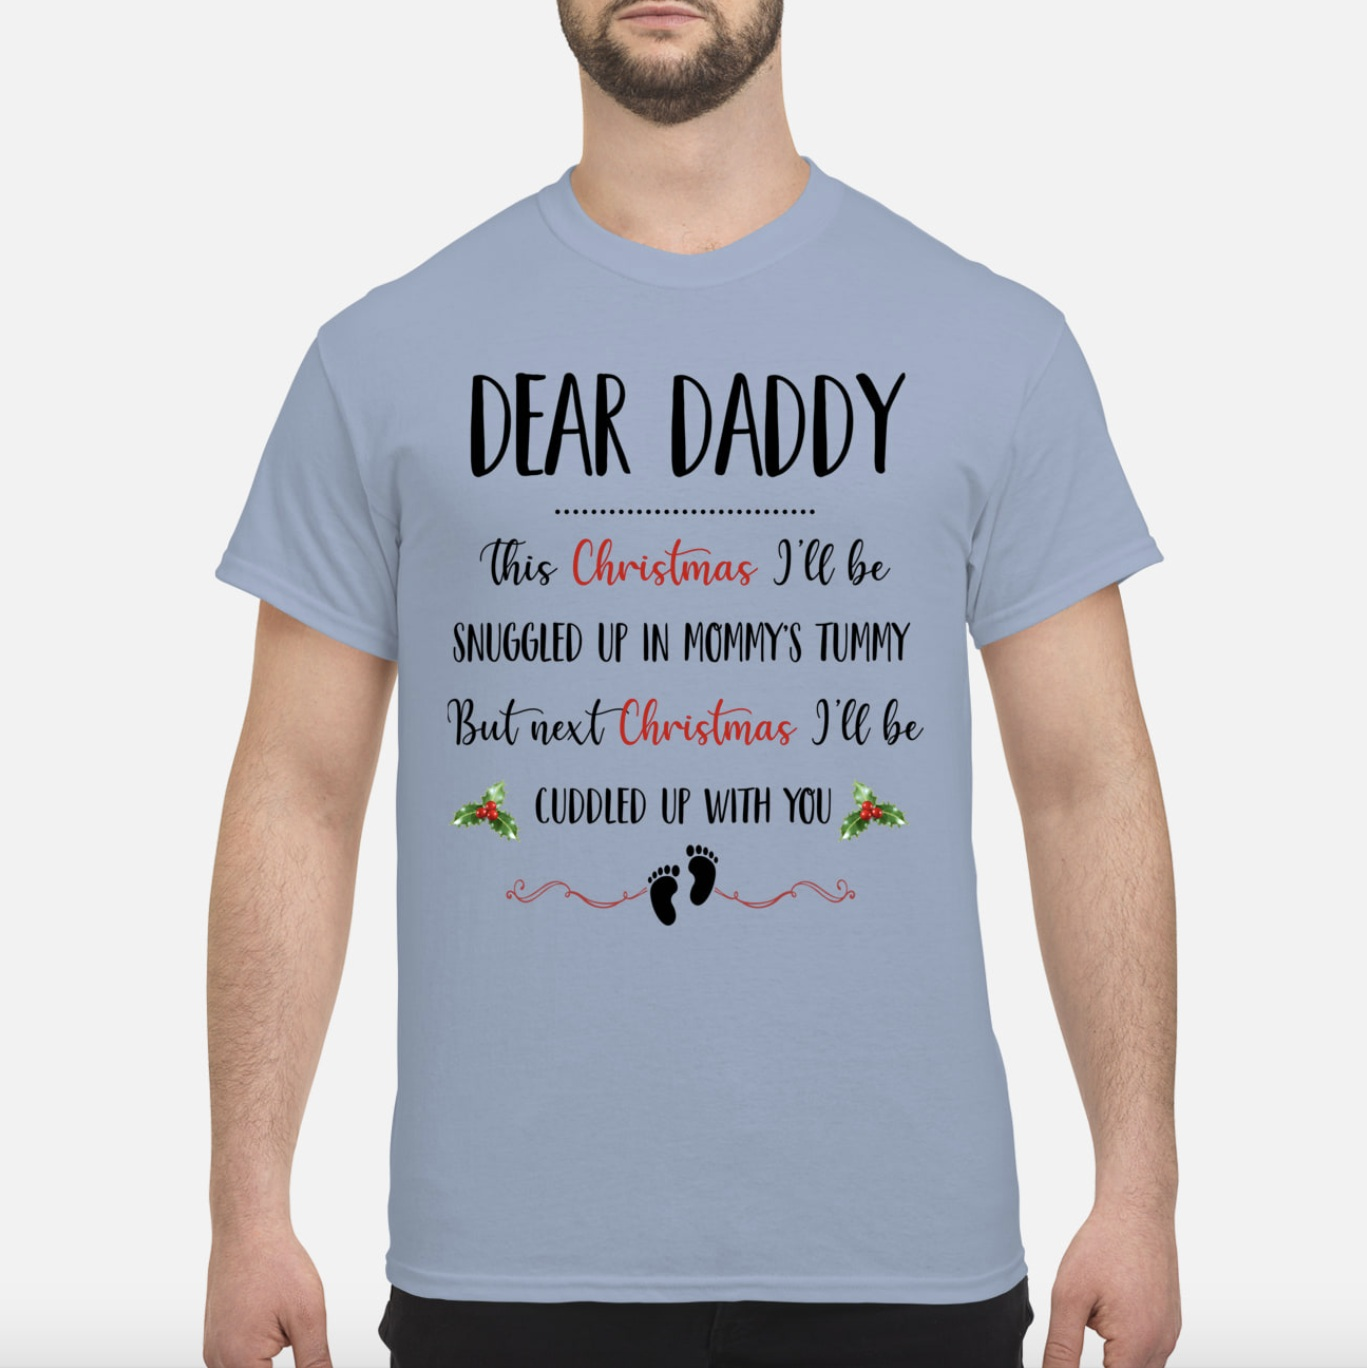 Dear daddy this christmas I'll be snuggled up in mommy's tummy men shirt